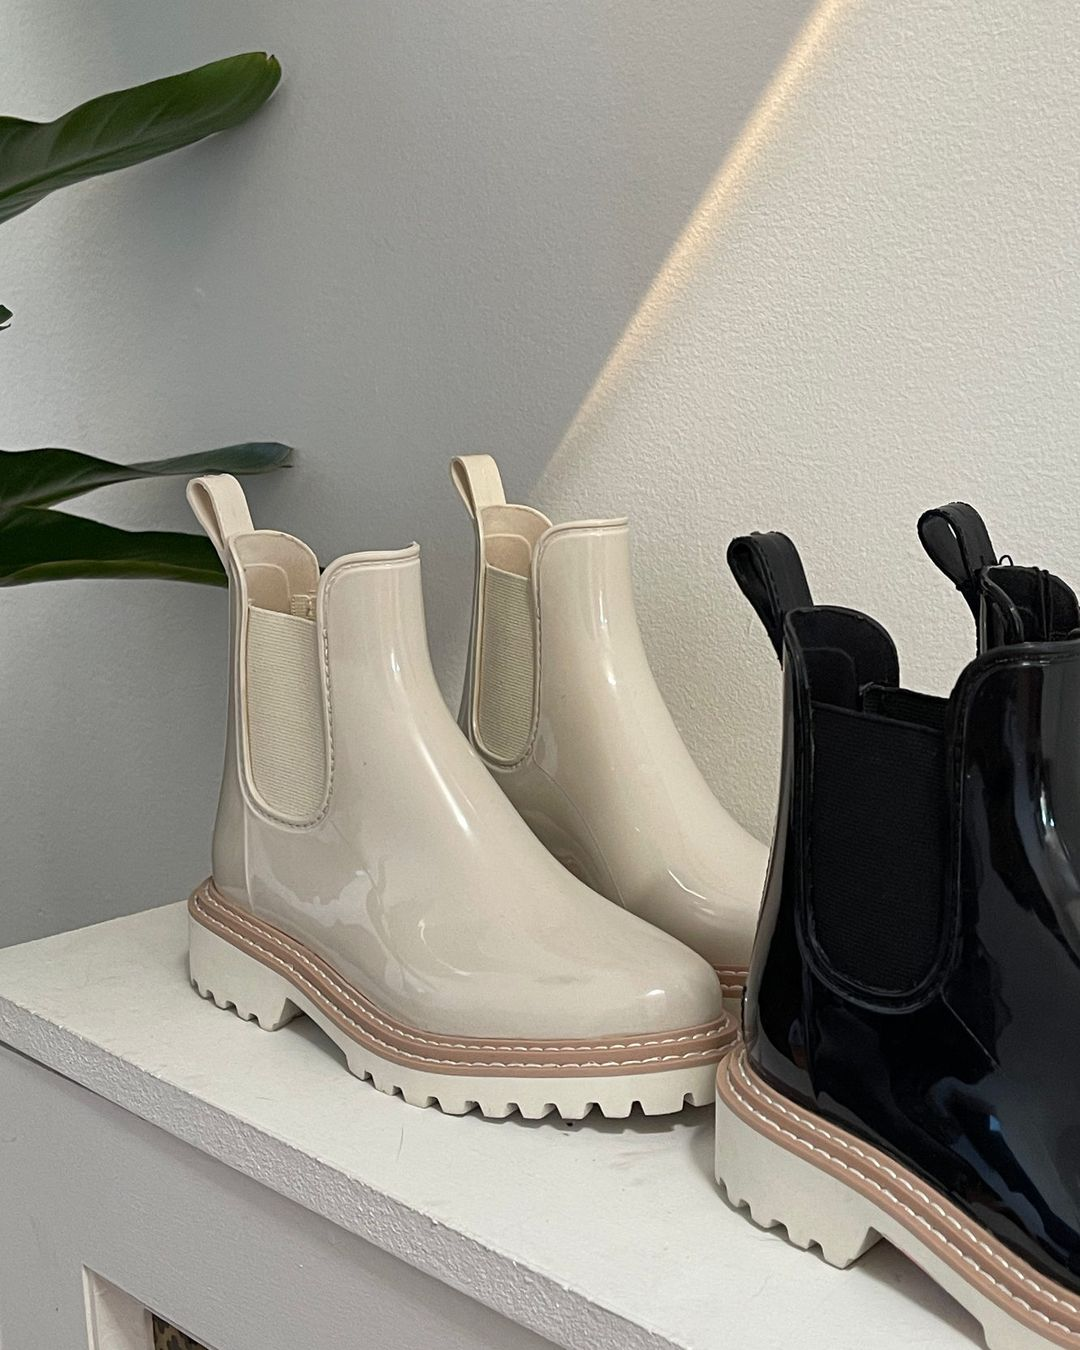 Wet conditions are no match for these black and ivory patent waterproof Chelsea boots with a sporty-looking rubber lug sole